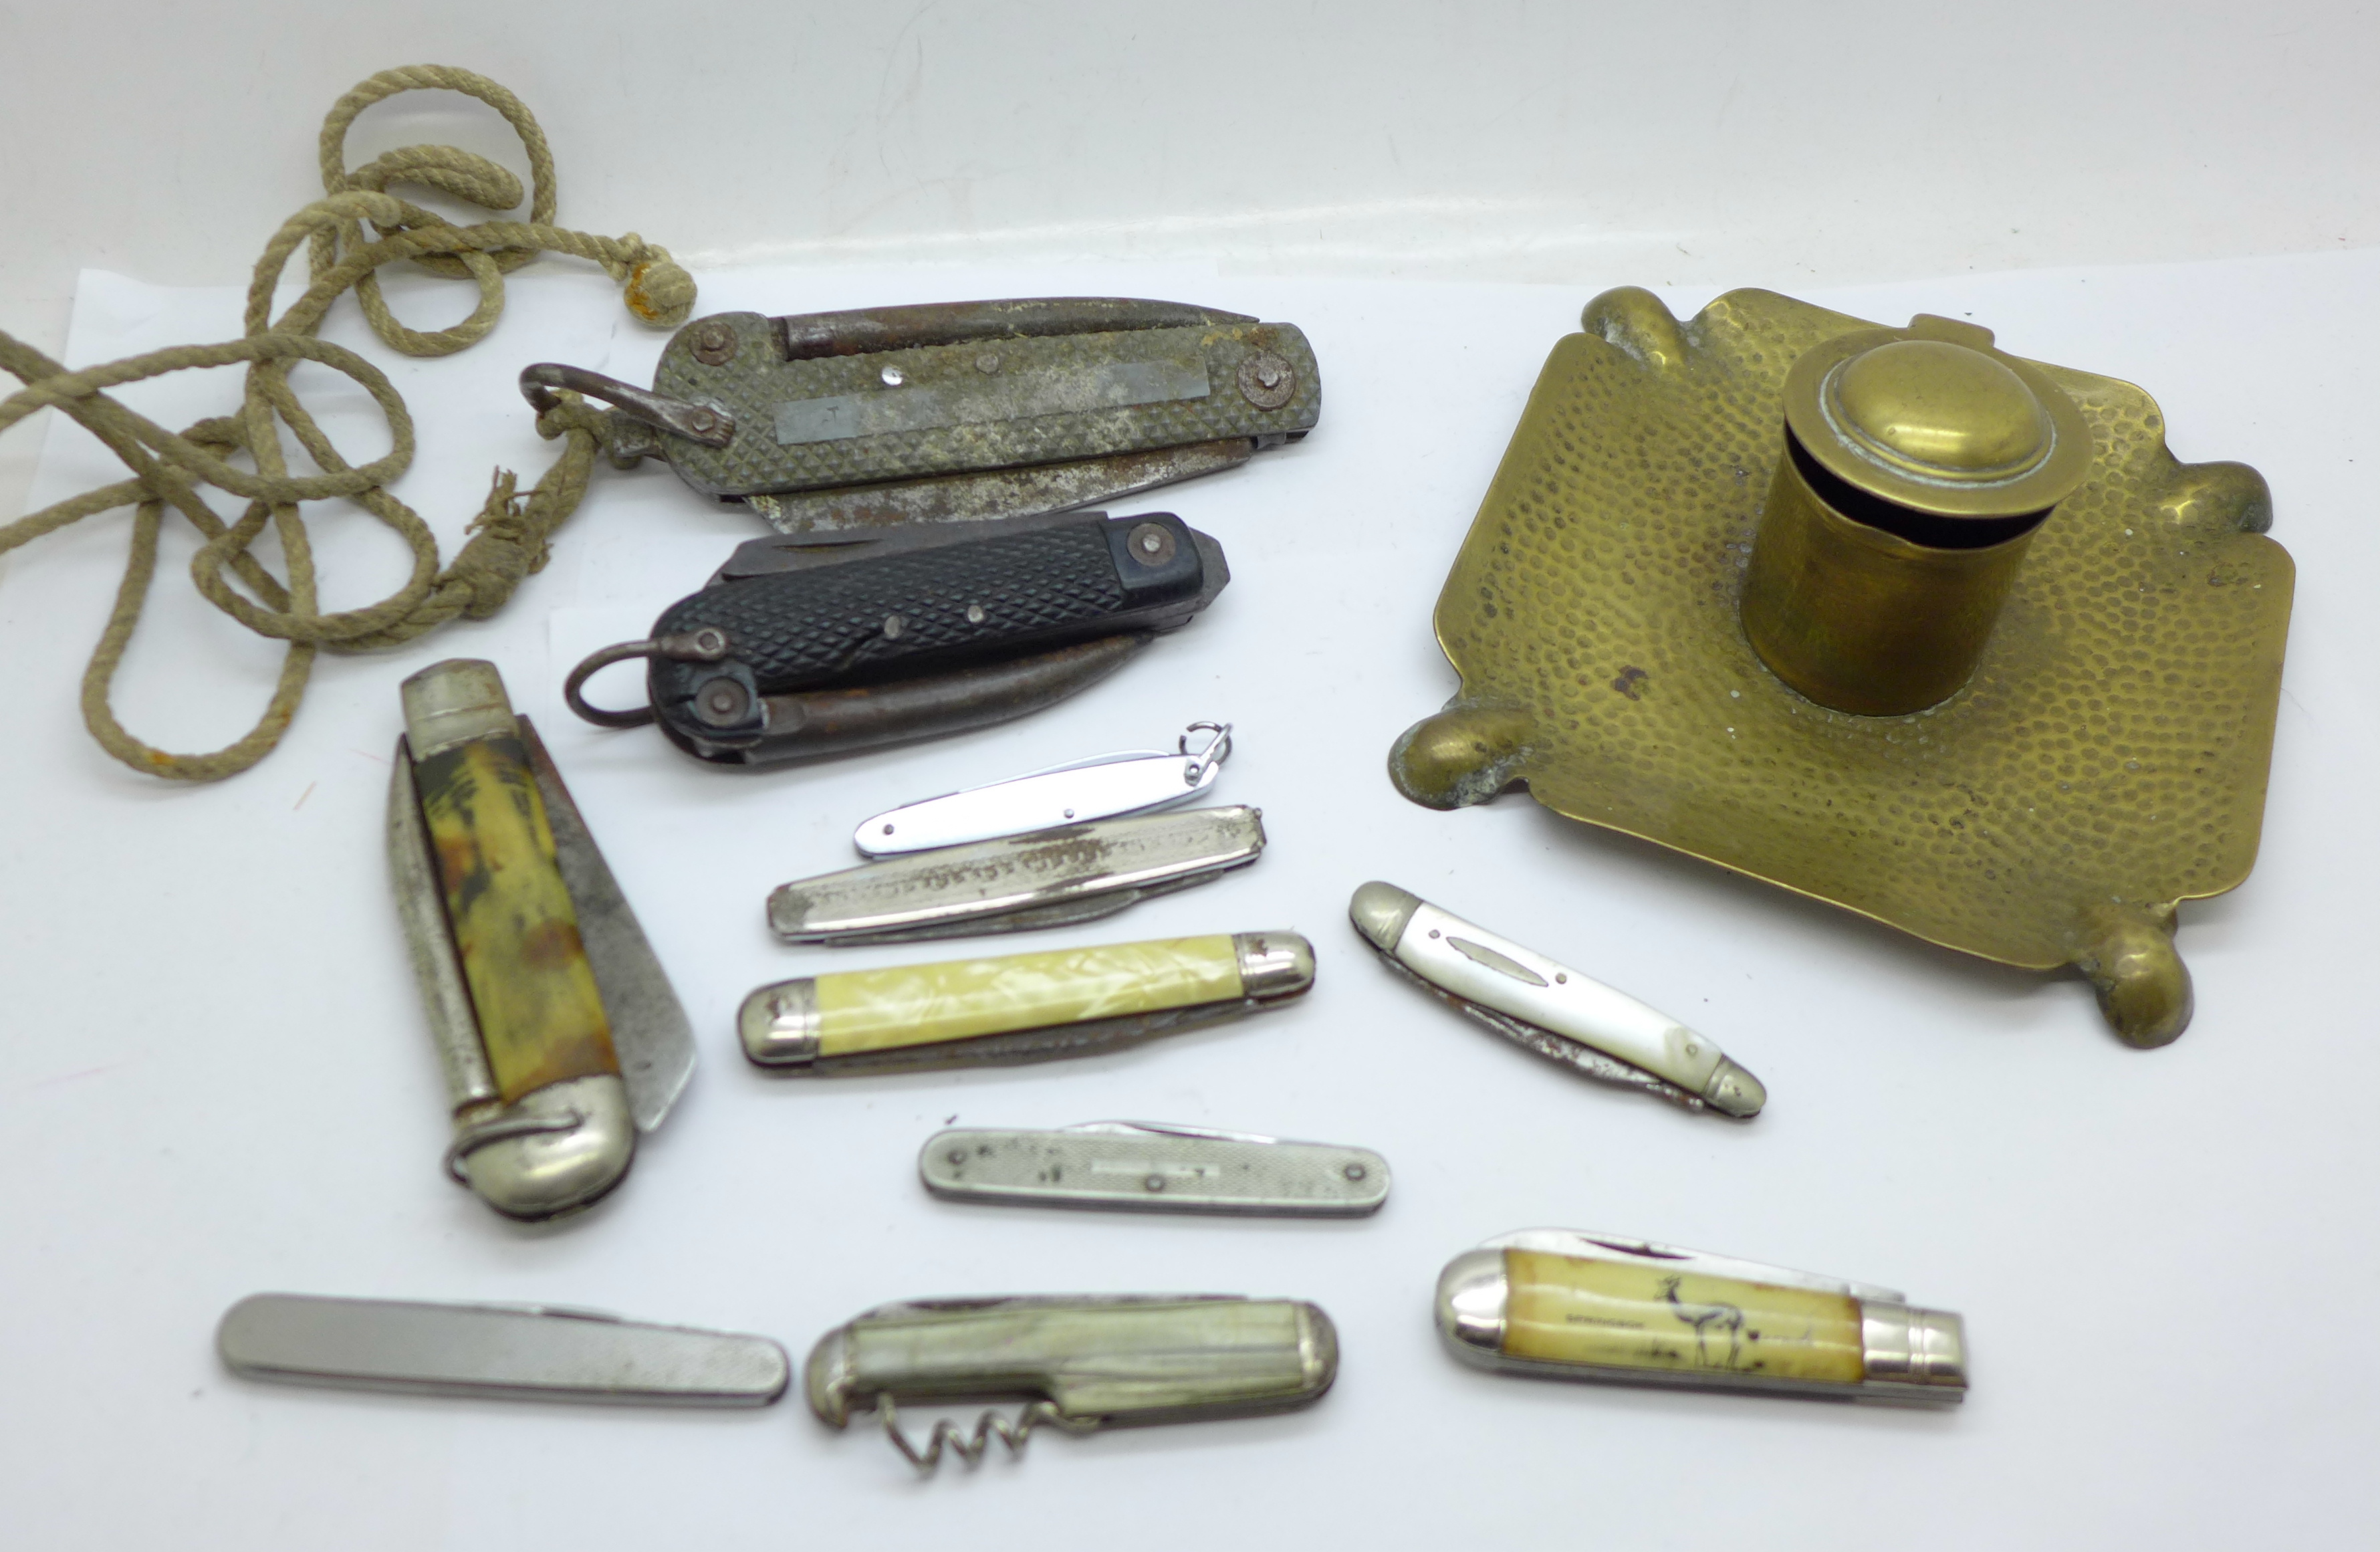 A brass inkwell and a collection of Army and other pocket knives